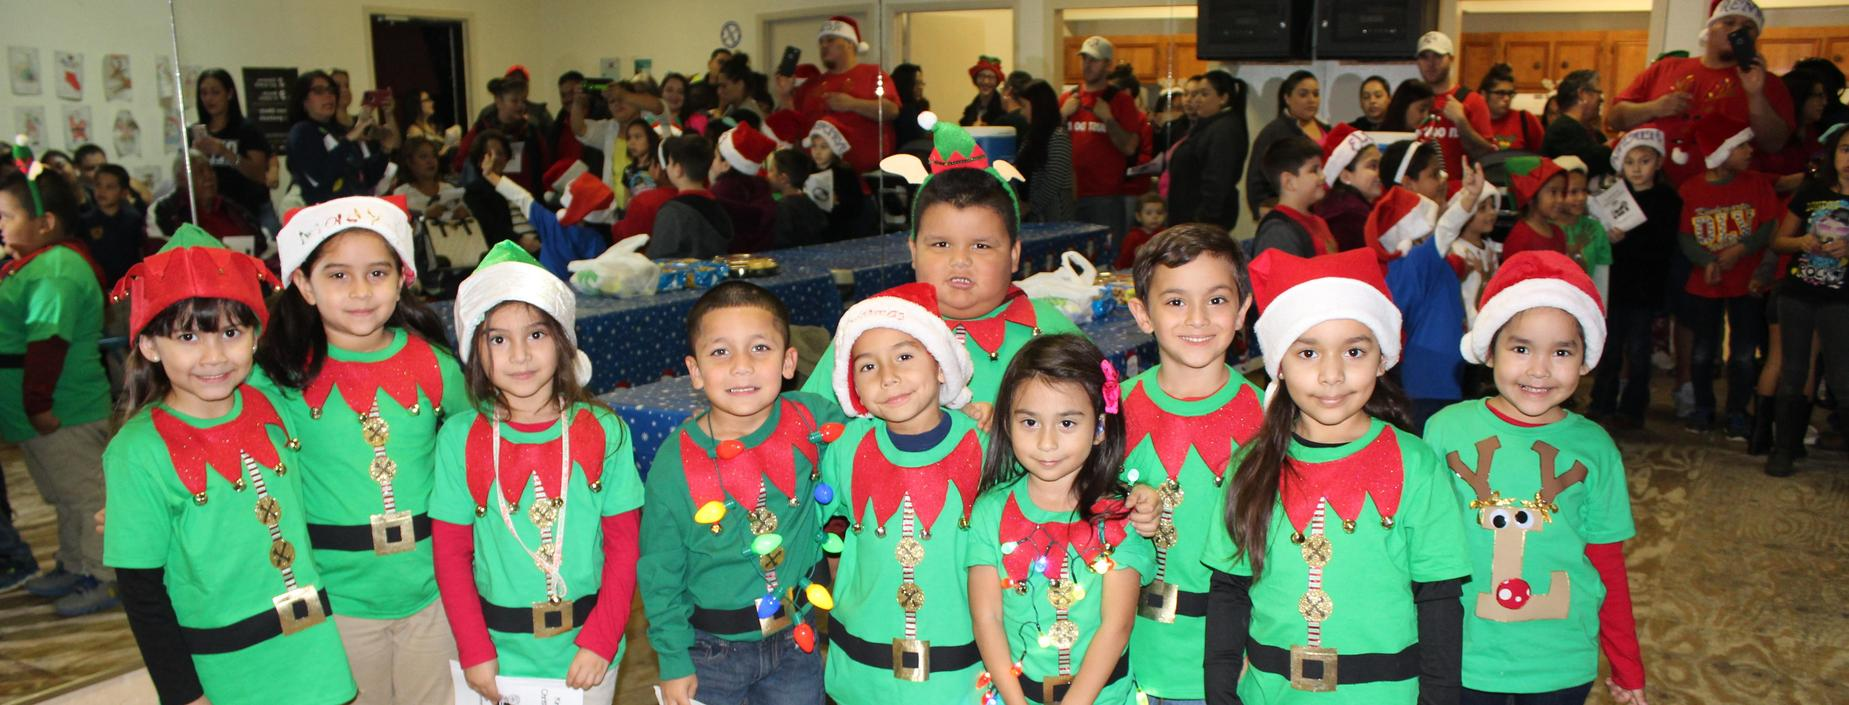 kinder student lining up to go christmas caroling